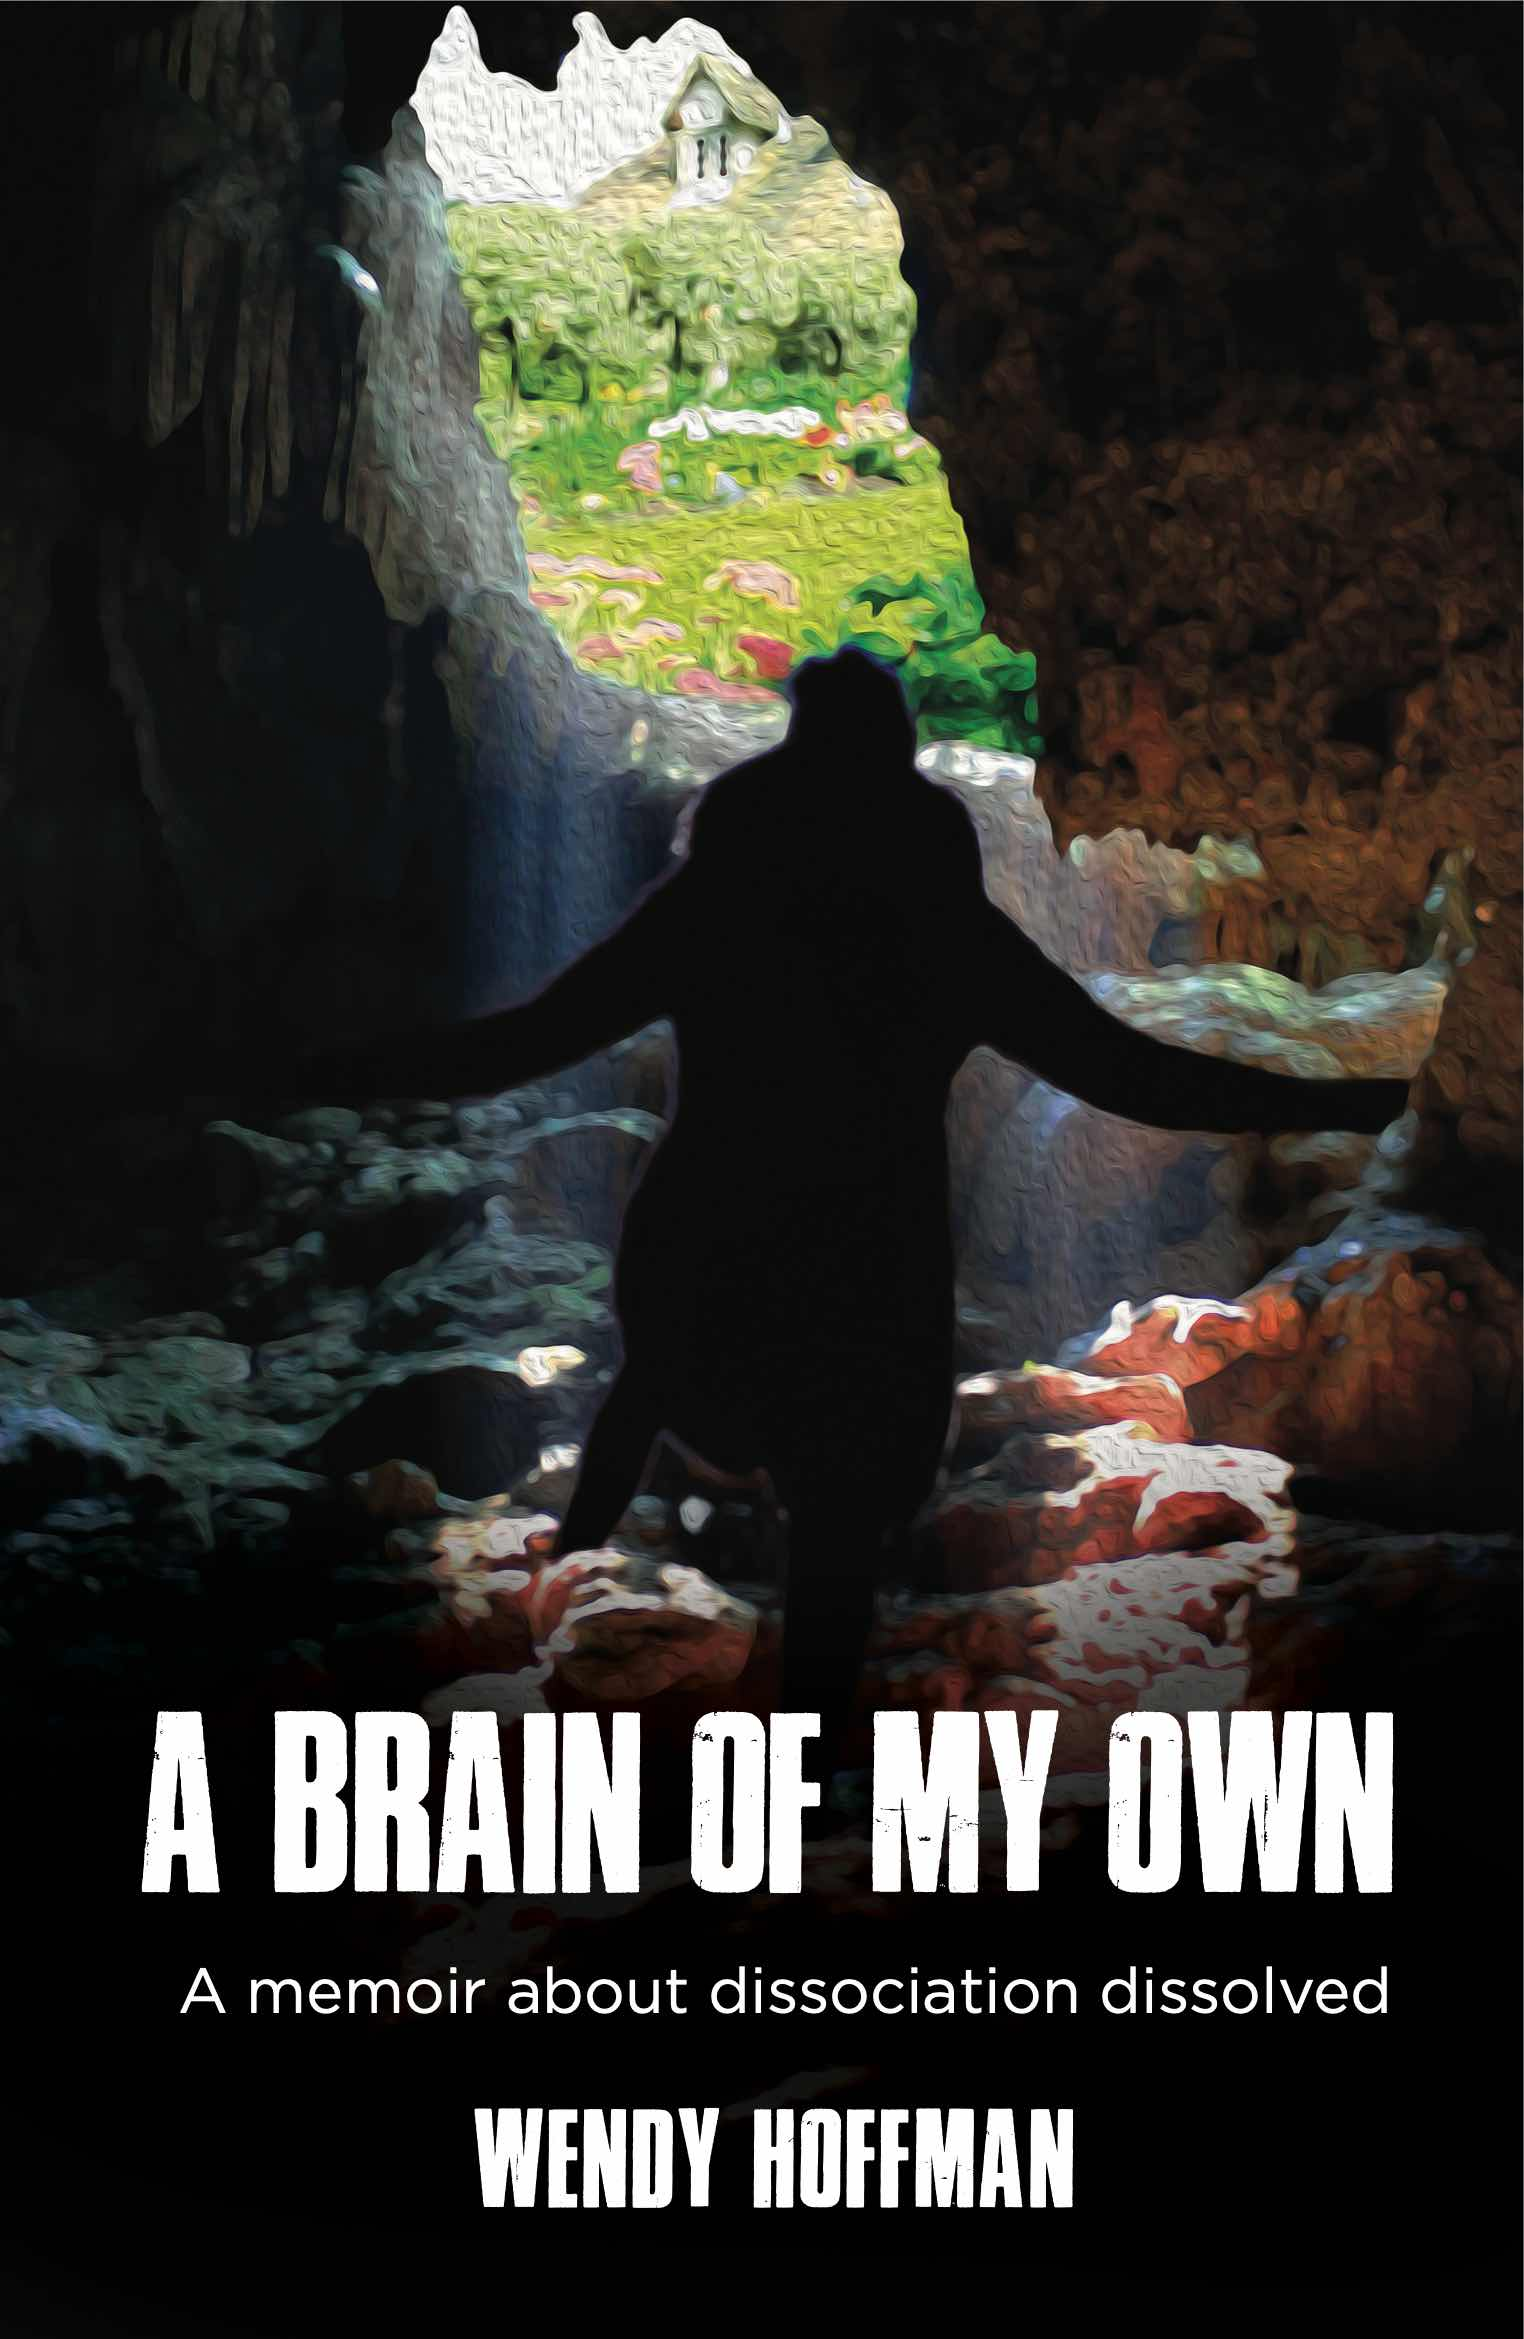 A Brain Of My Own: A memoir about dissociation dissolved